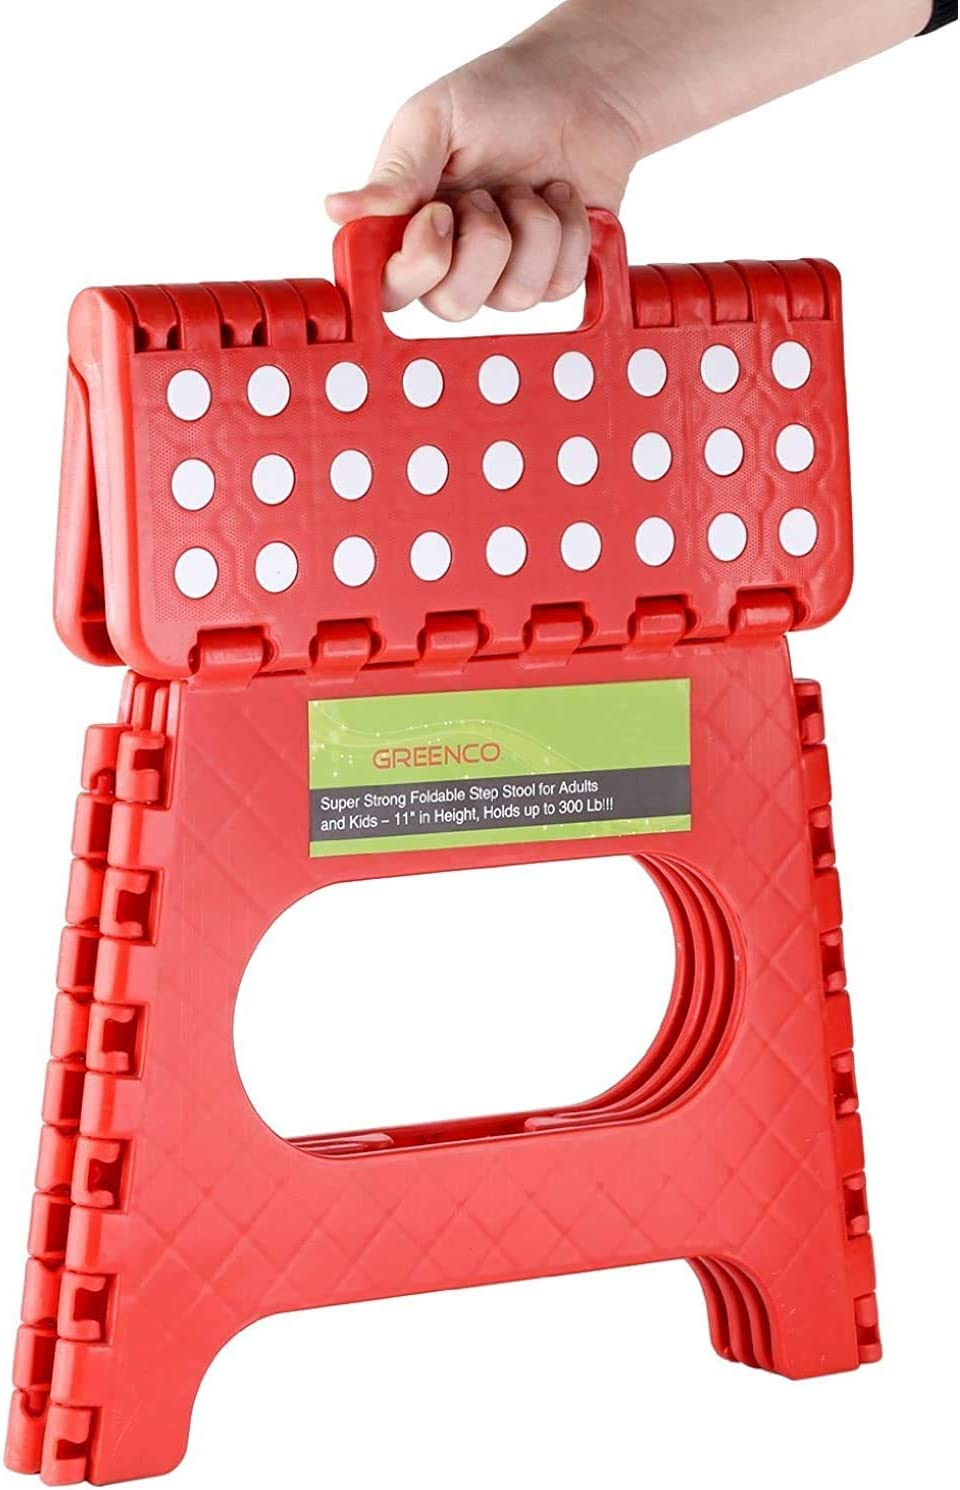 11 inch Greenco Red Strong Foldable Step Stool for Adults and Kids